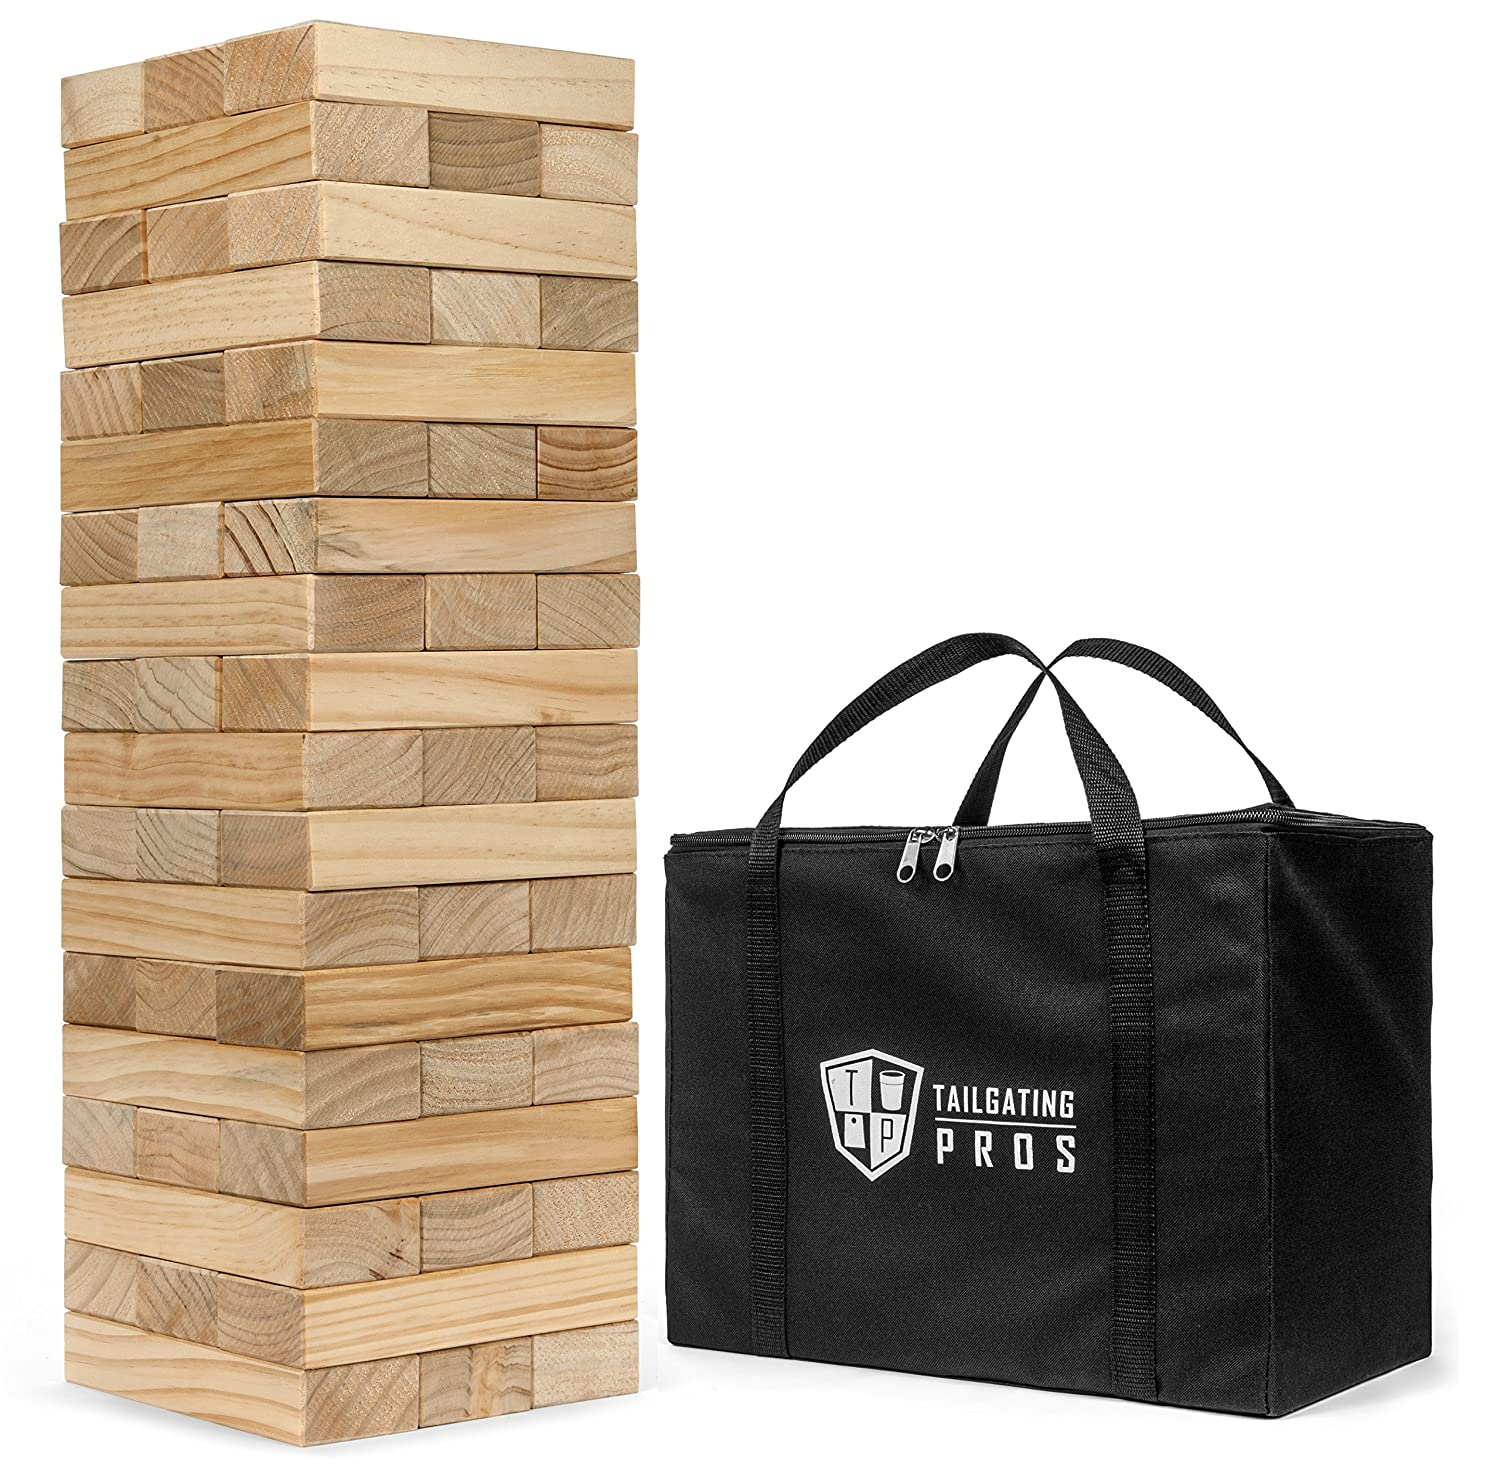 Tailgating Pros Giant Toppling Timbers Premium Version with Carrying Case